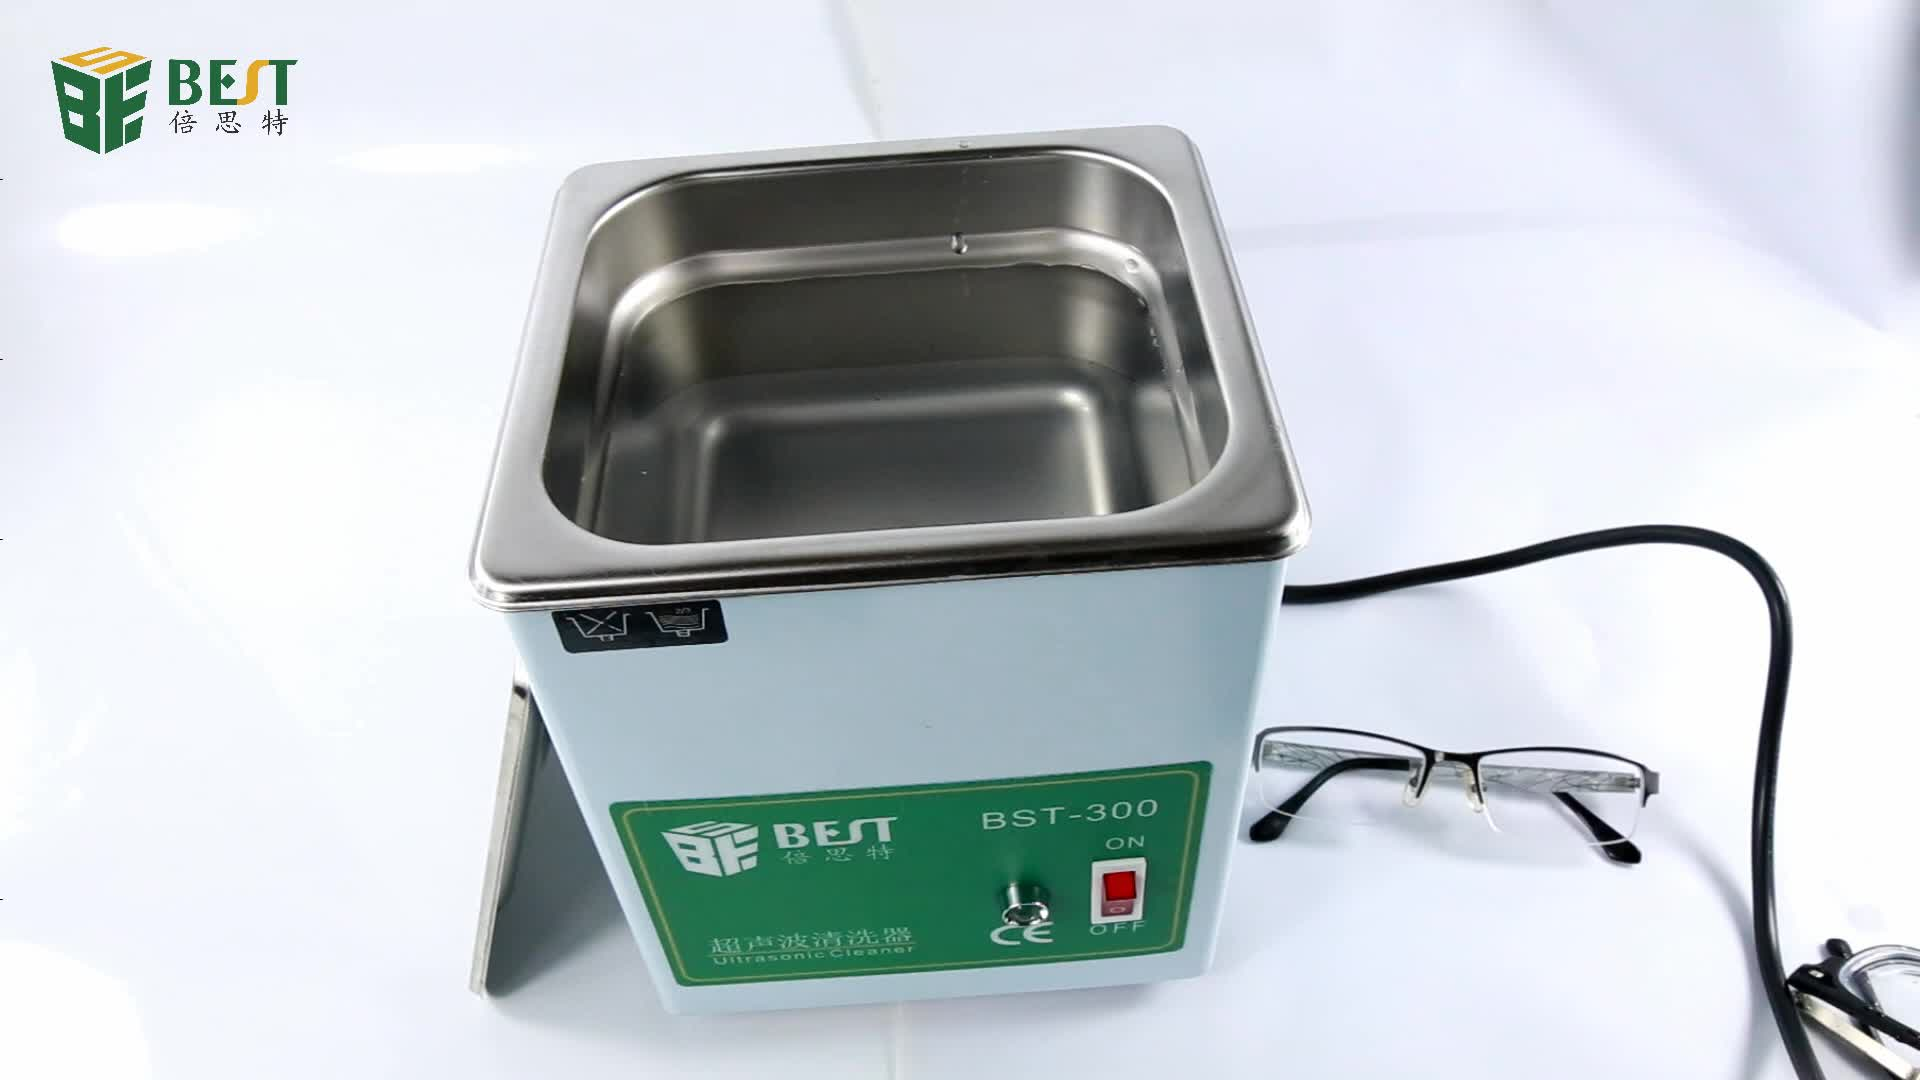 BEST 300 Practical Automatic Glasses Dental Portable Ultrasonic Cleaner